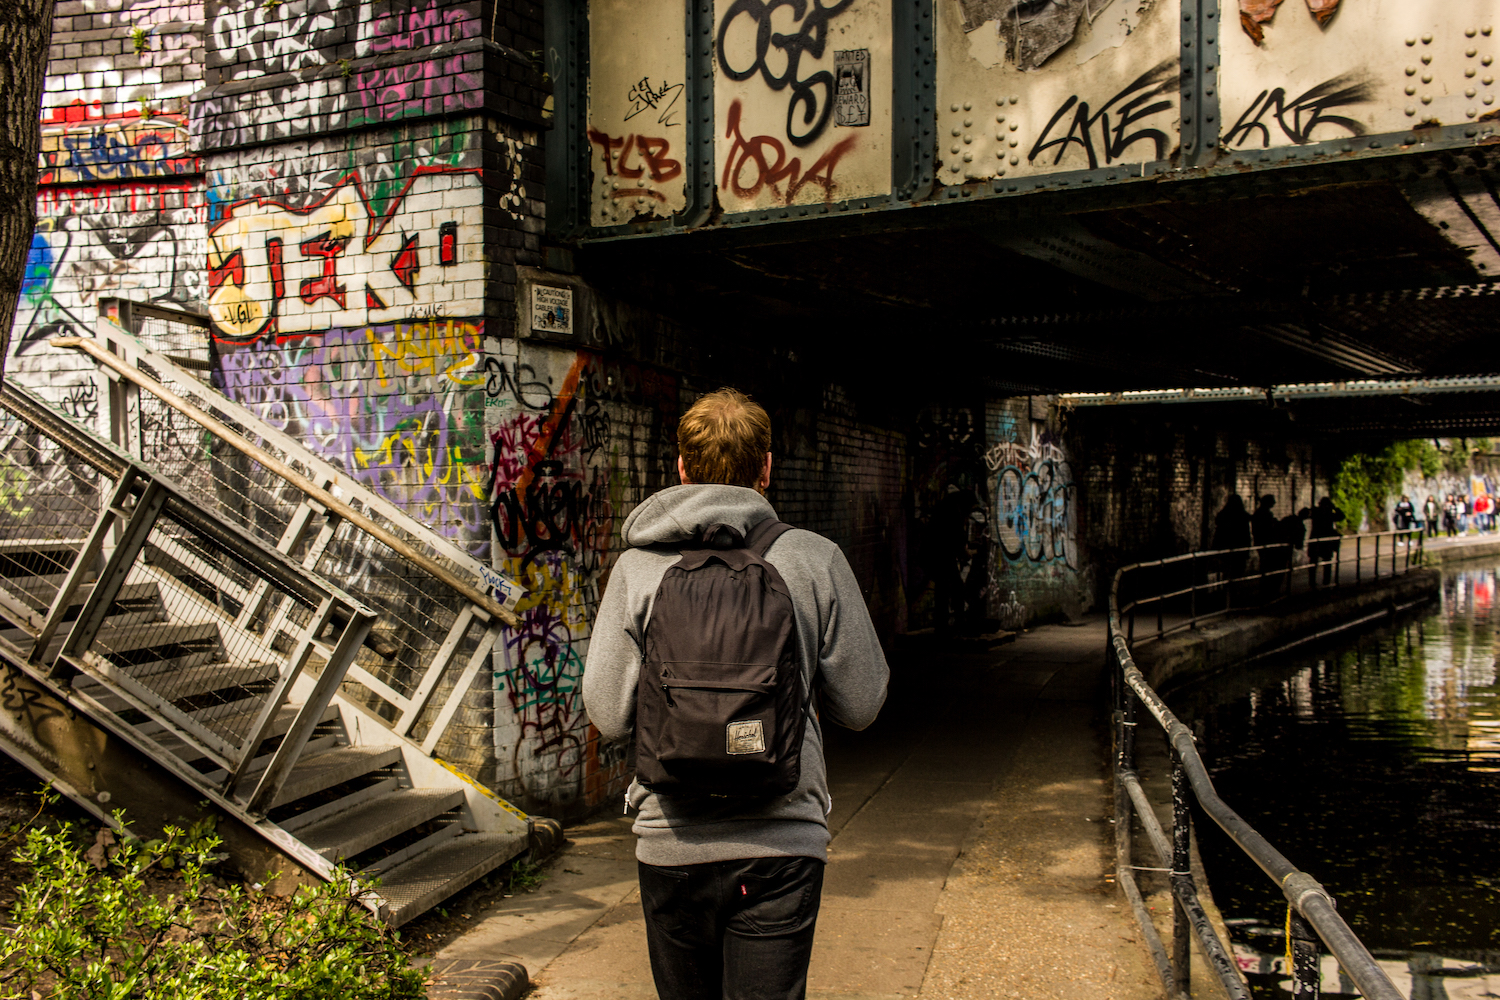 Professional Photography White Man In Grey Hoody Black Jeans And Backpack Walking Under Bridge With Graffiti Next To Canal River In Little Venice Paddington London